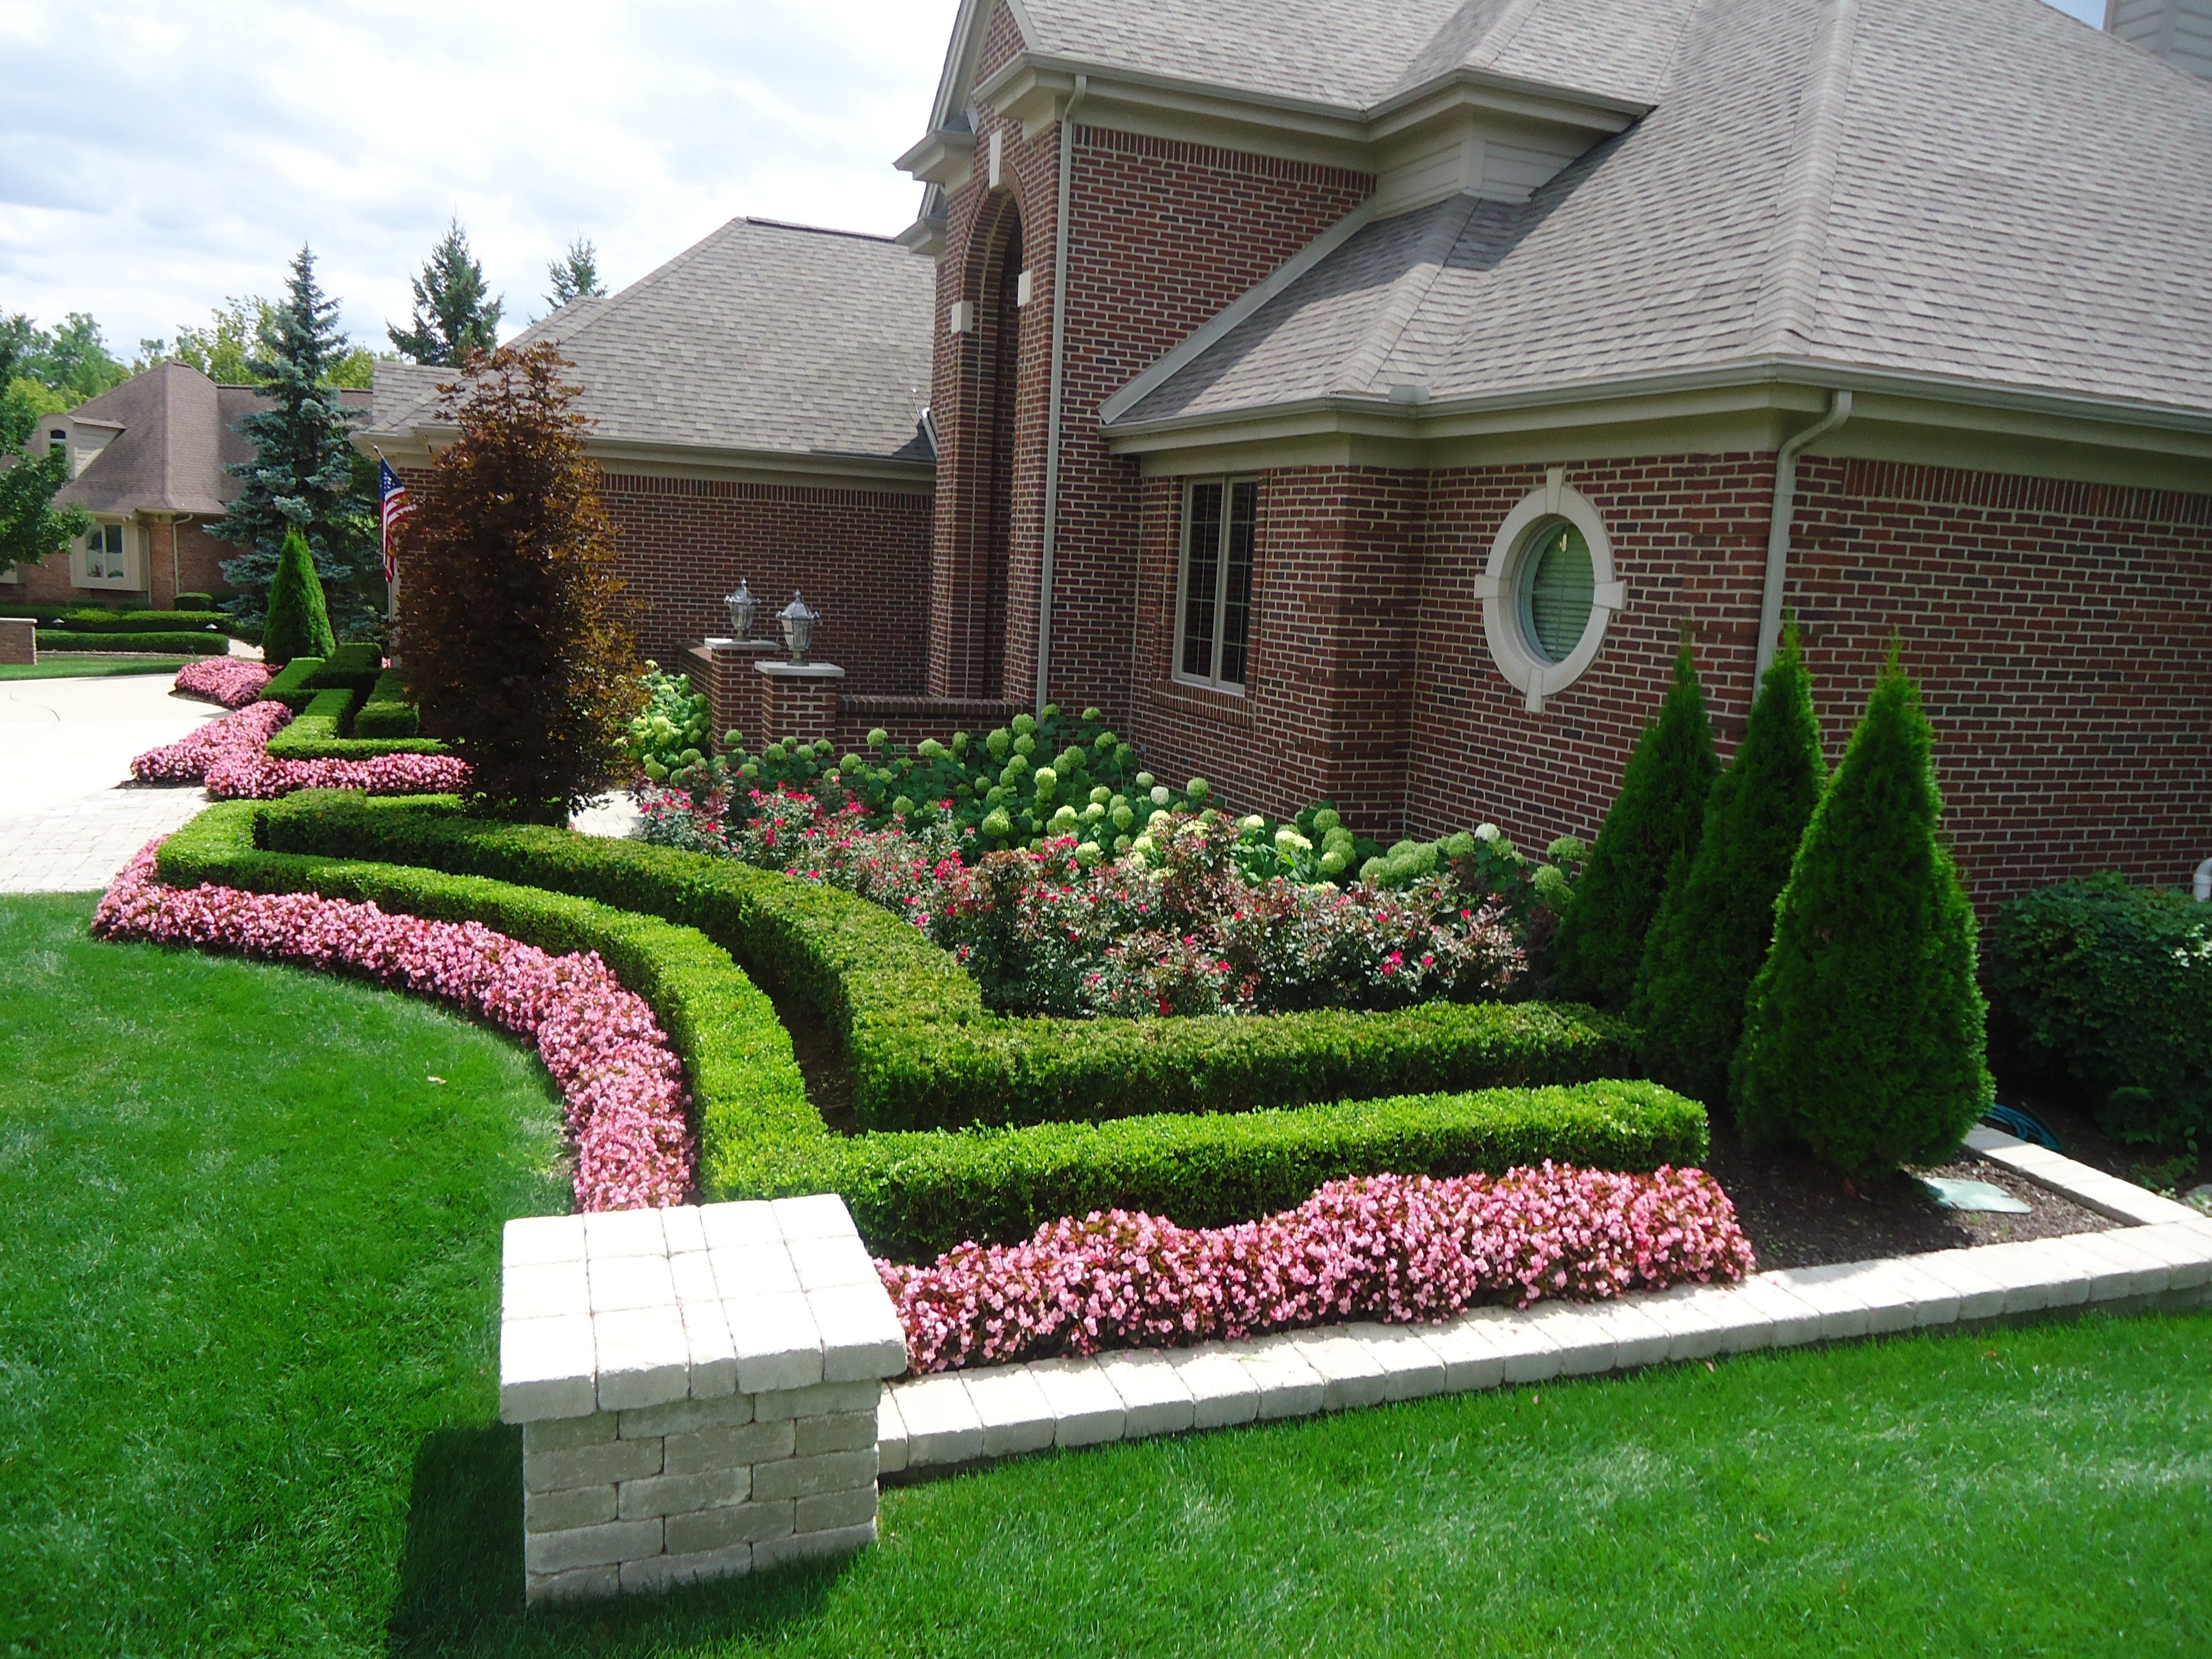 10 Lovely Landscaping Ideas For Front Yards front yard front yard landscaping ideas beautiful picture concept 2021